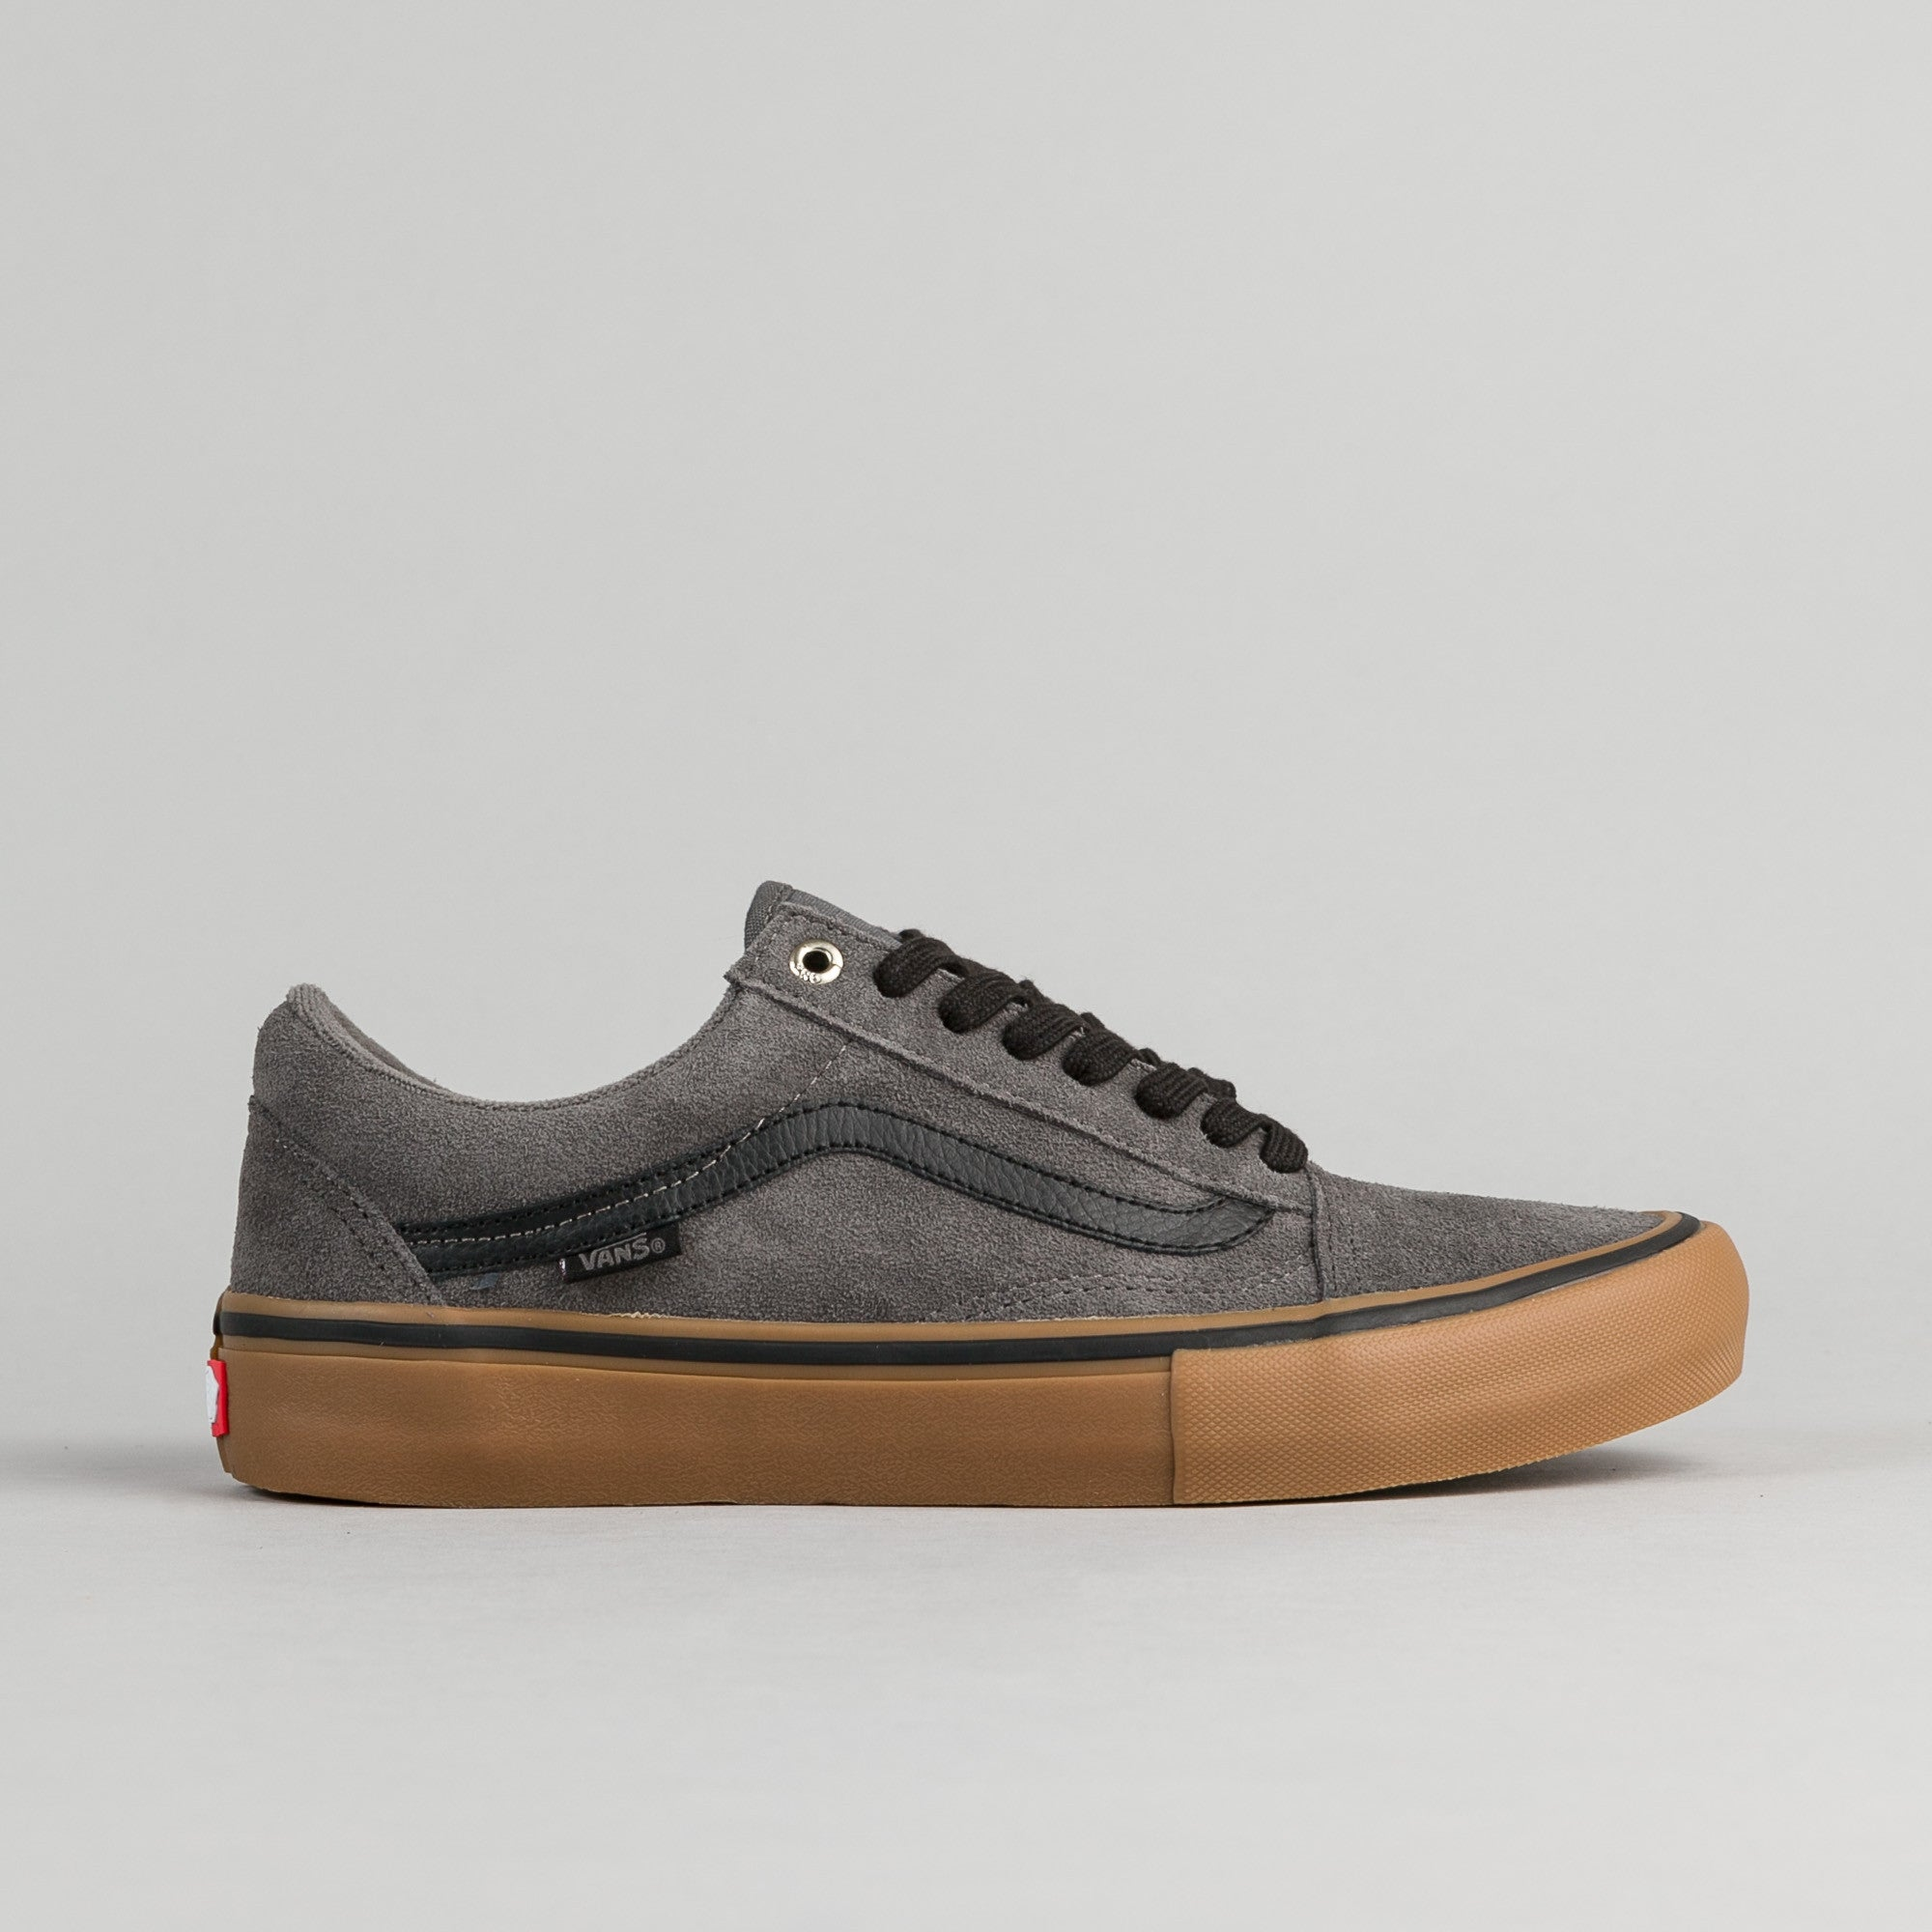 b279ab2d9affbc Vans Old Skool Pro Shoes - Grey   Black   Gum